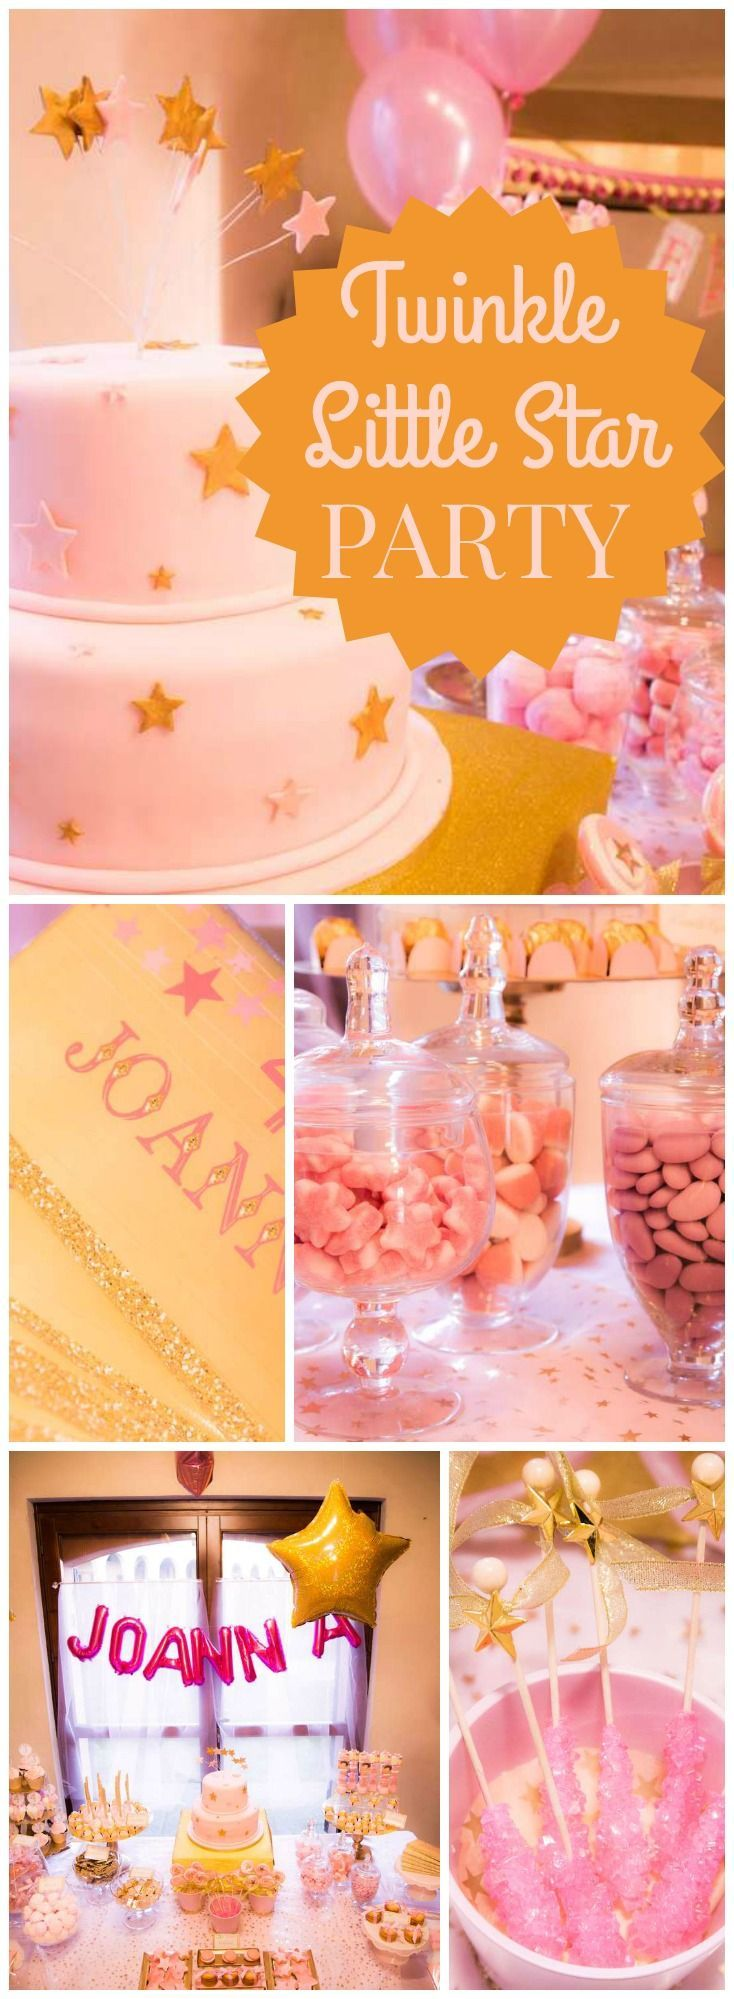 This pink and gold Twinkle Twinkle Little Star party has a lovely cake on slide 12! See more party ideas at CatchMyParty.com!